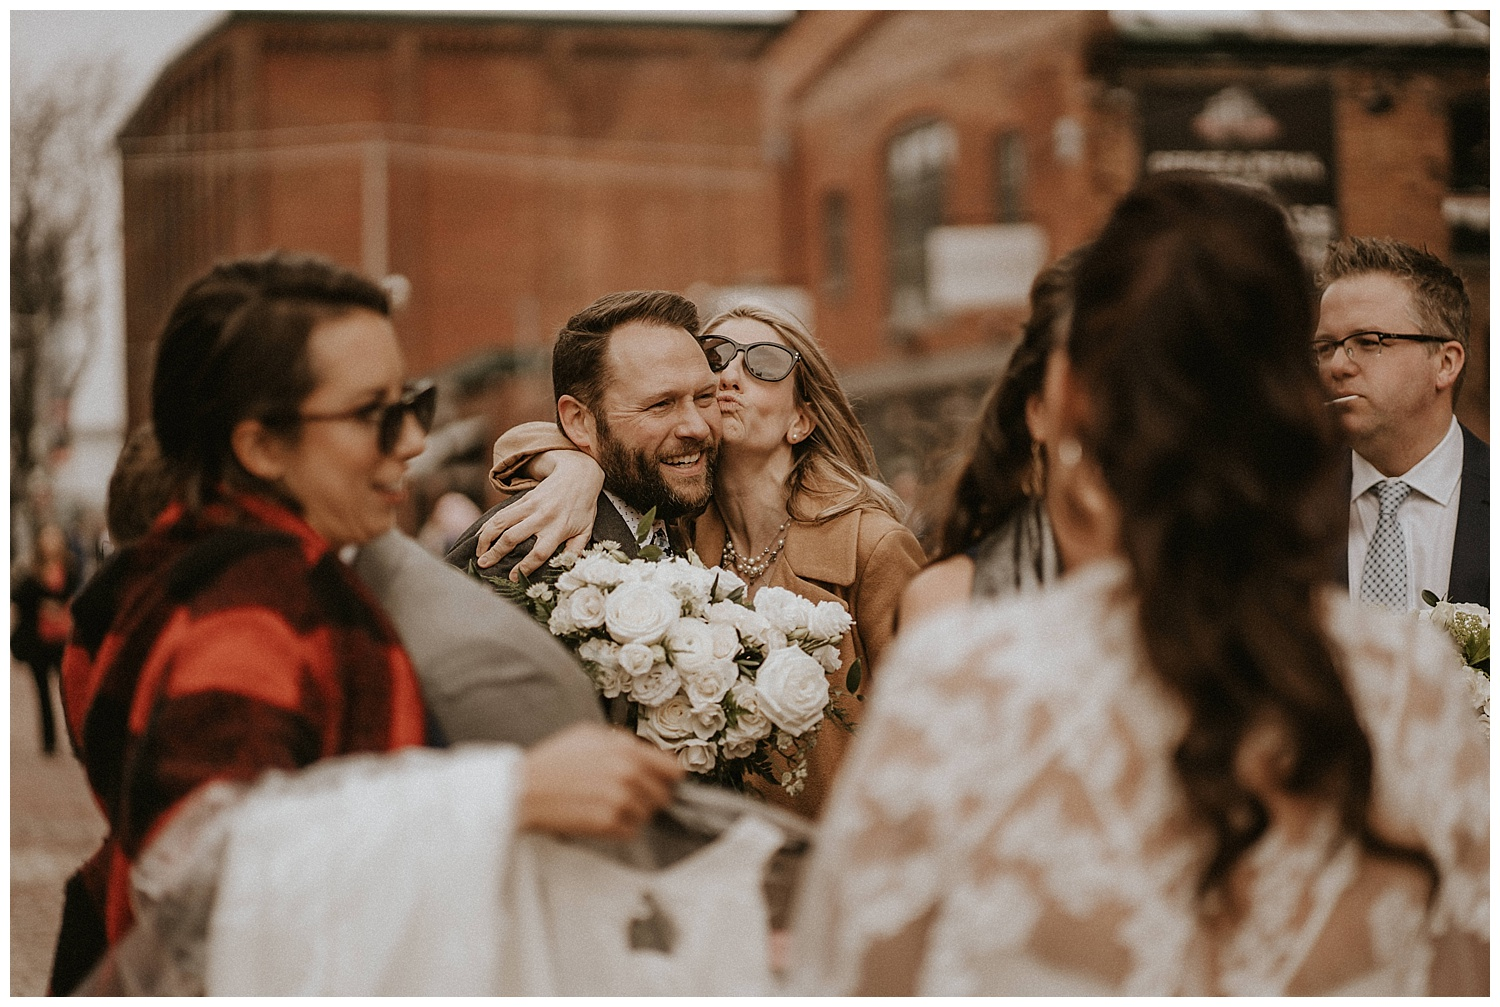 Katie Marie Photography | Archeo Wedding Arta Gallery Wedding | Distillery District Wedding | Toronto Wedding Photographer | Hamilton Toronto Ontario Wedding Photographer |_0038.jpg